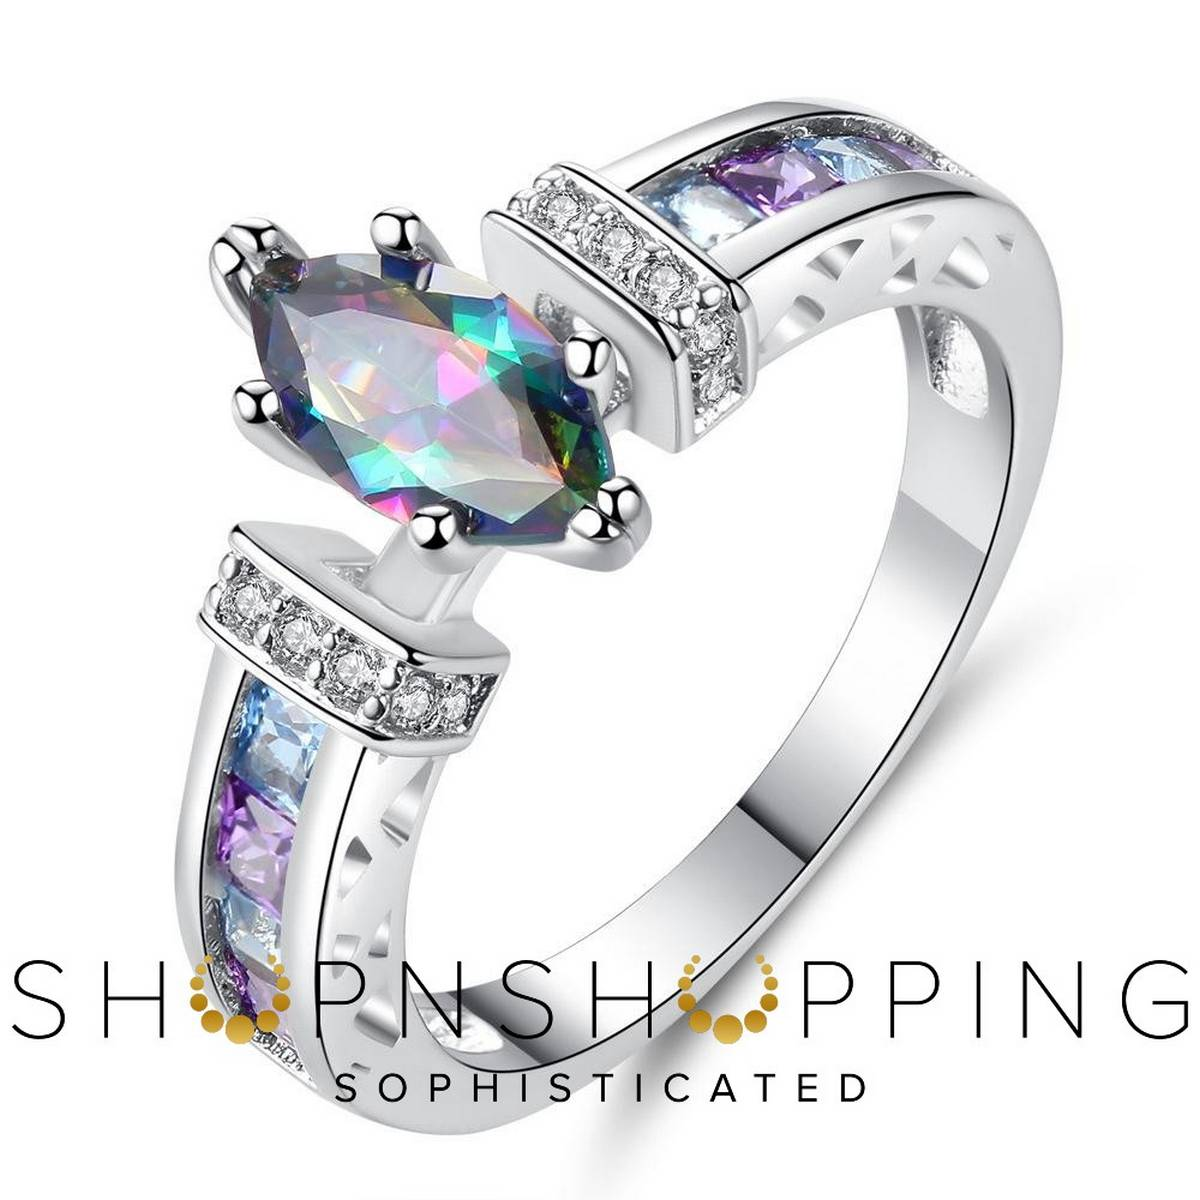 Imported High Quality Silver Colorful Zircon engagement Rings for Girls & Women - HS-WL-R555